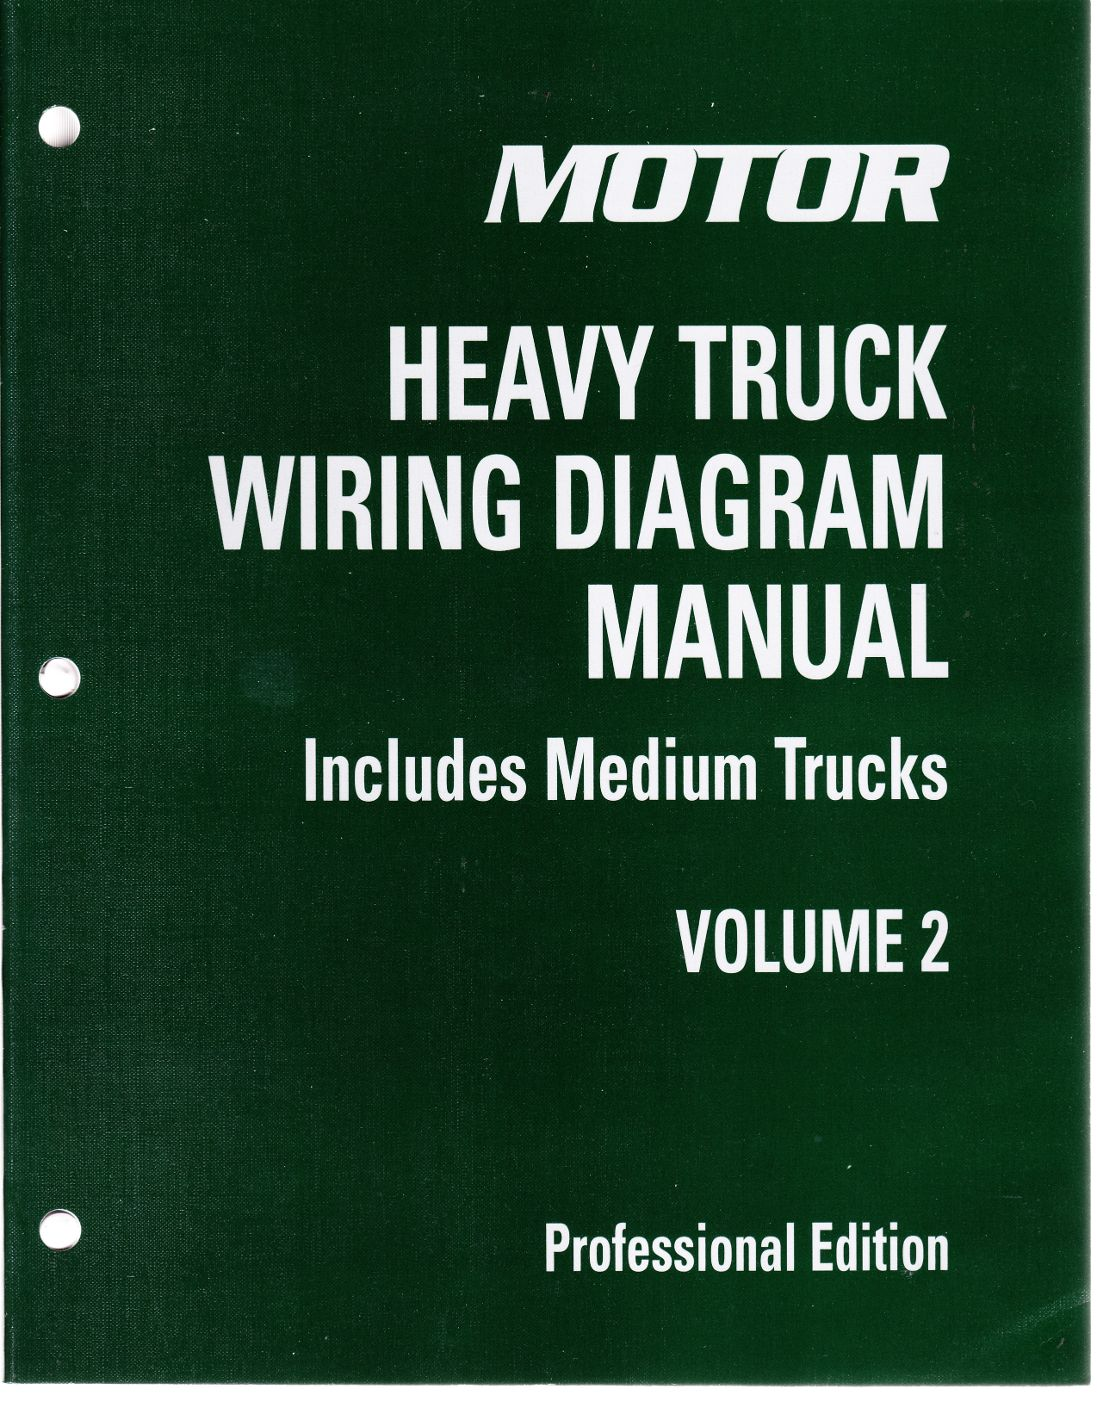 2009 - 2013 motor medium & heavy truck wiring diagram manual, 4th edition,  vol  2